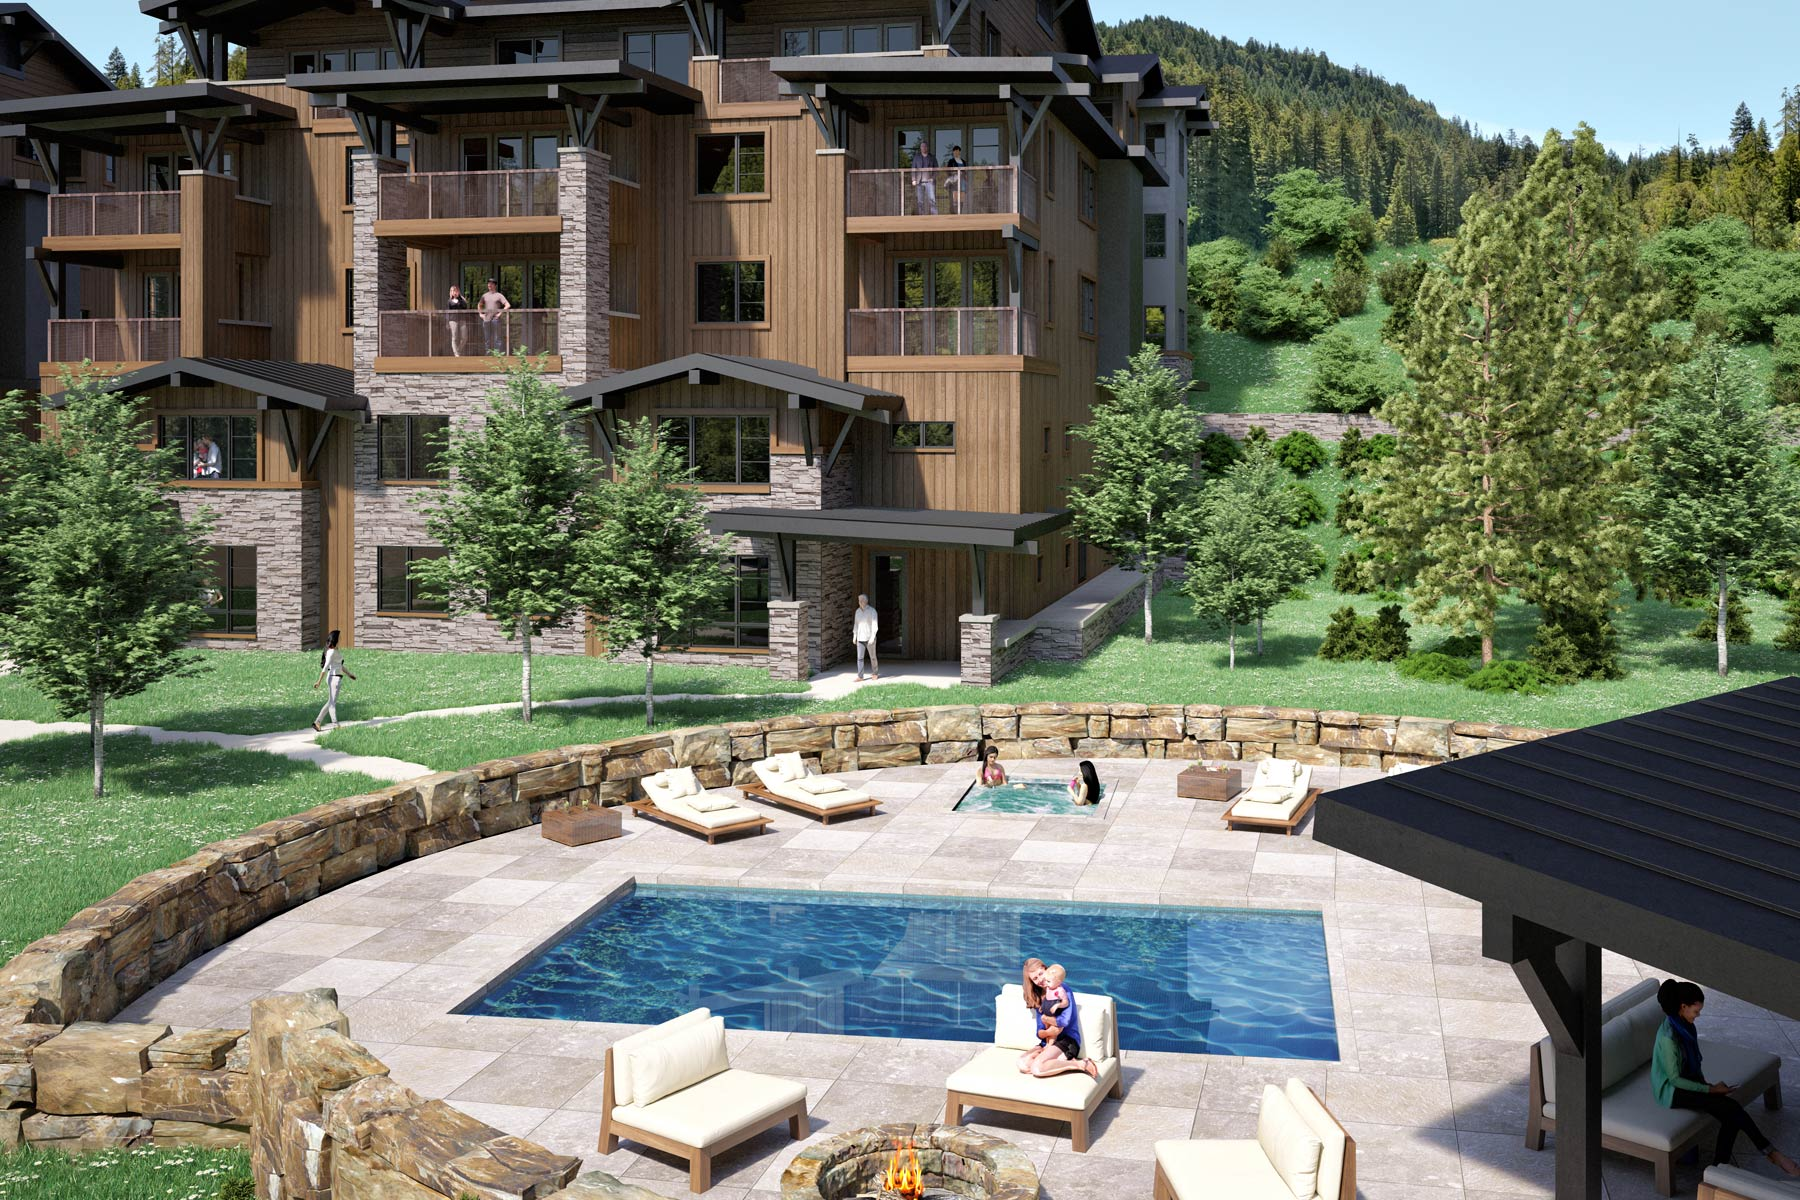 Condominium for Sale at New Construction Mountain Lake Condo 2 Summit View Road Unit 102 Big Sky, Montana 59716 United States